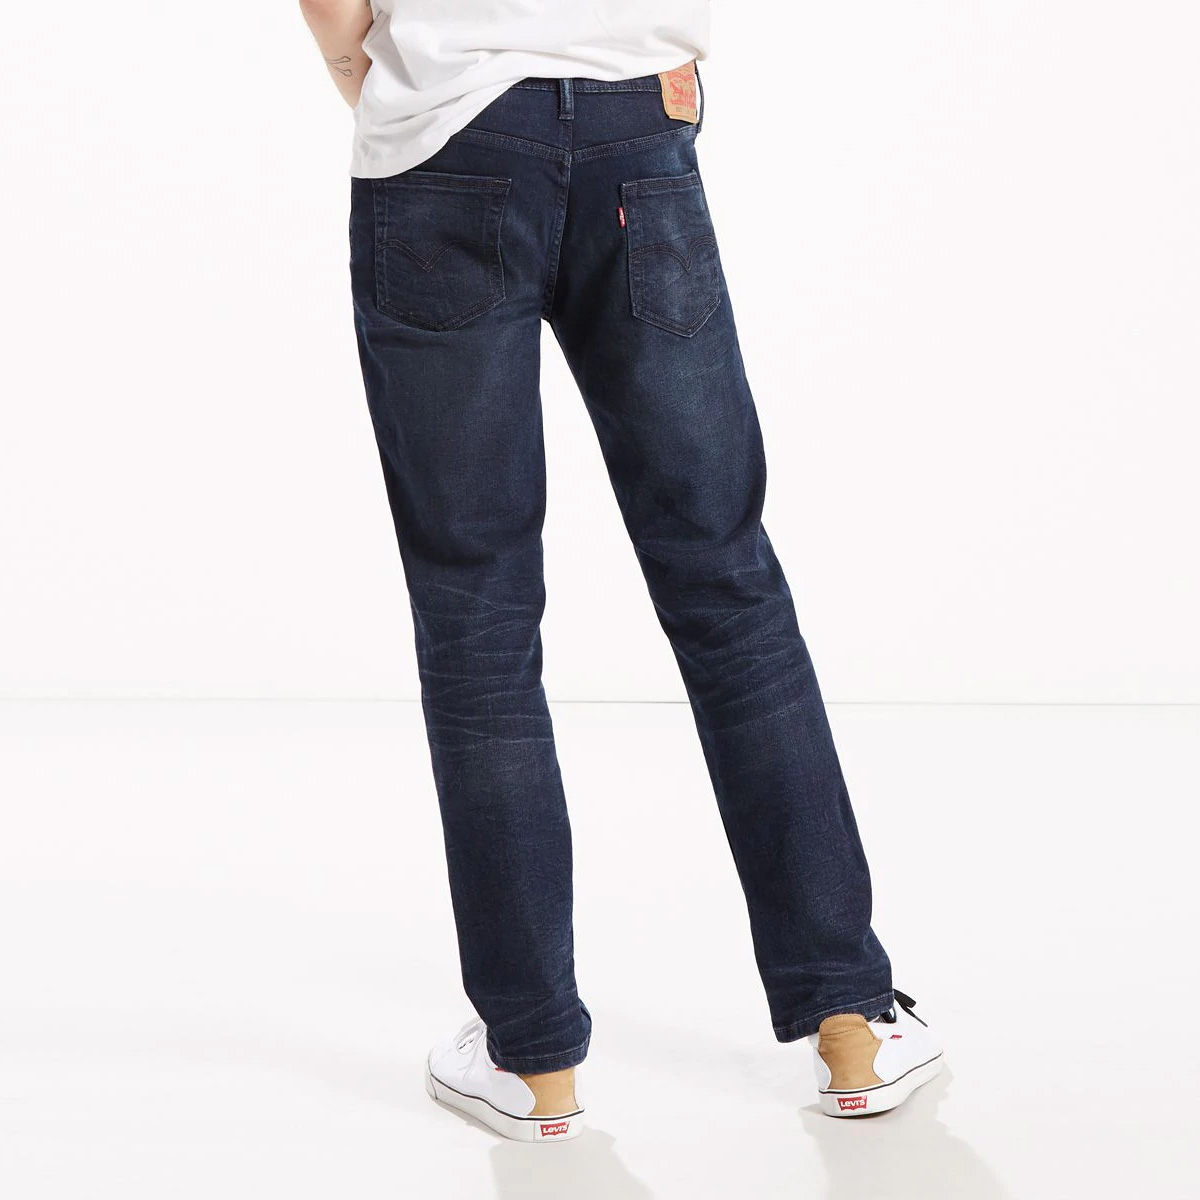 quan-jeans-levis-512-sharkley